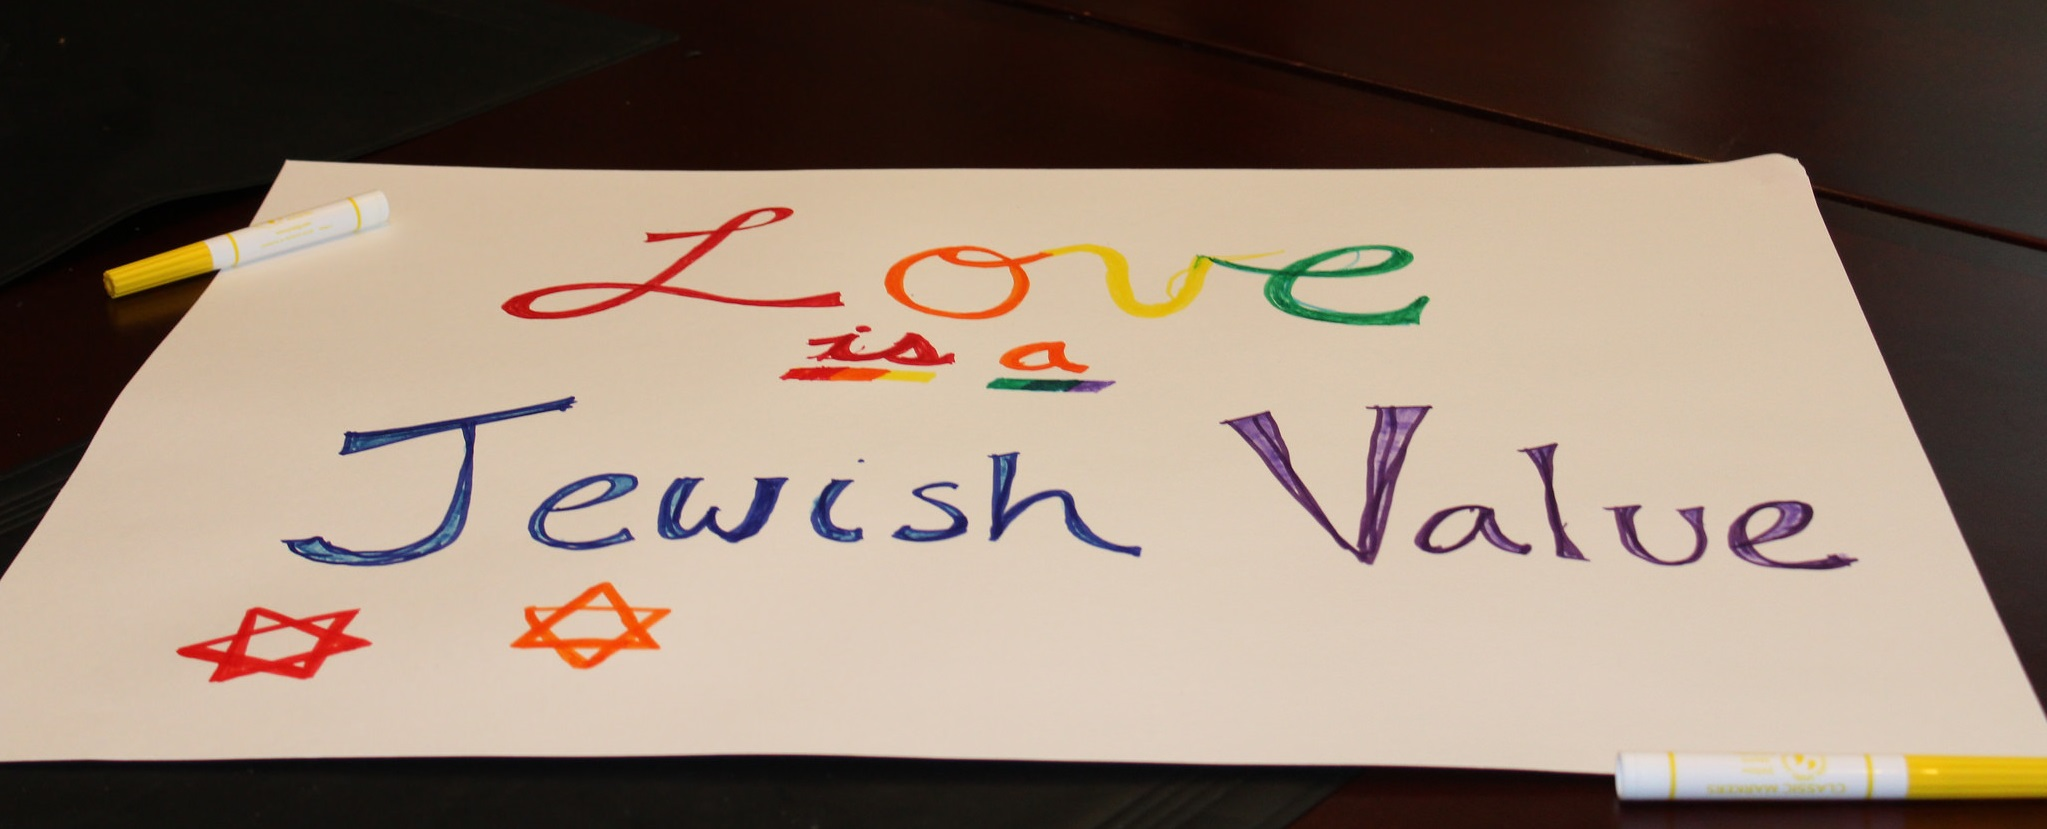 Love is a Jewish value sign